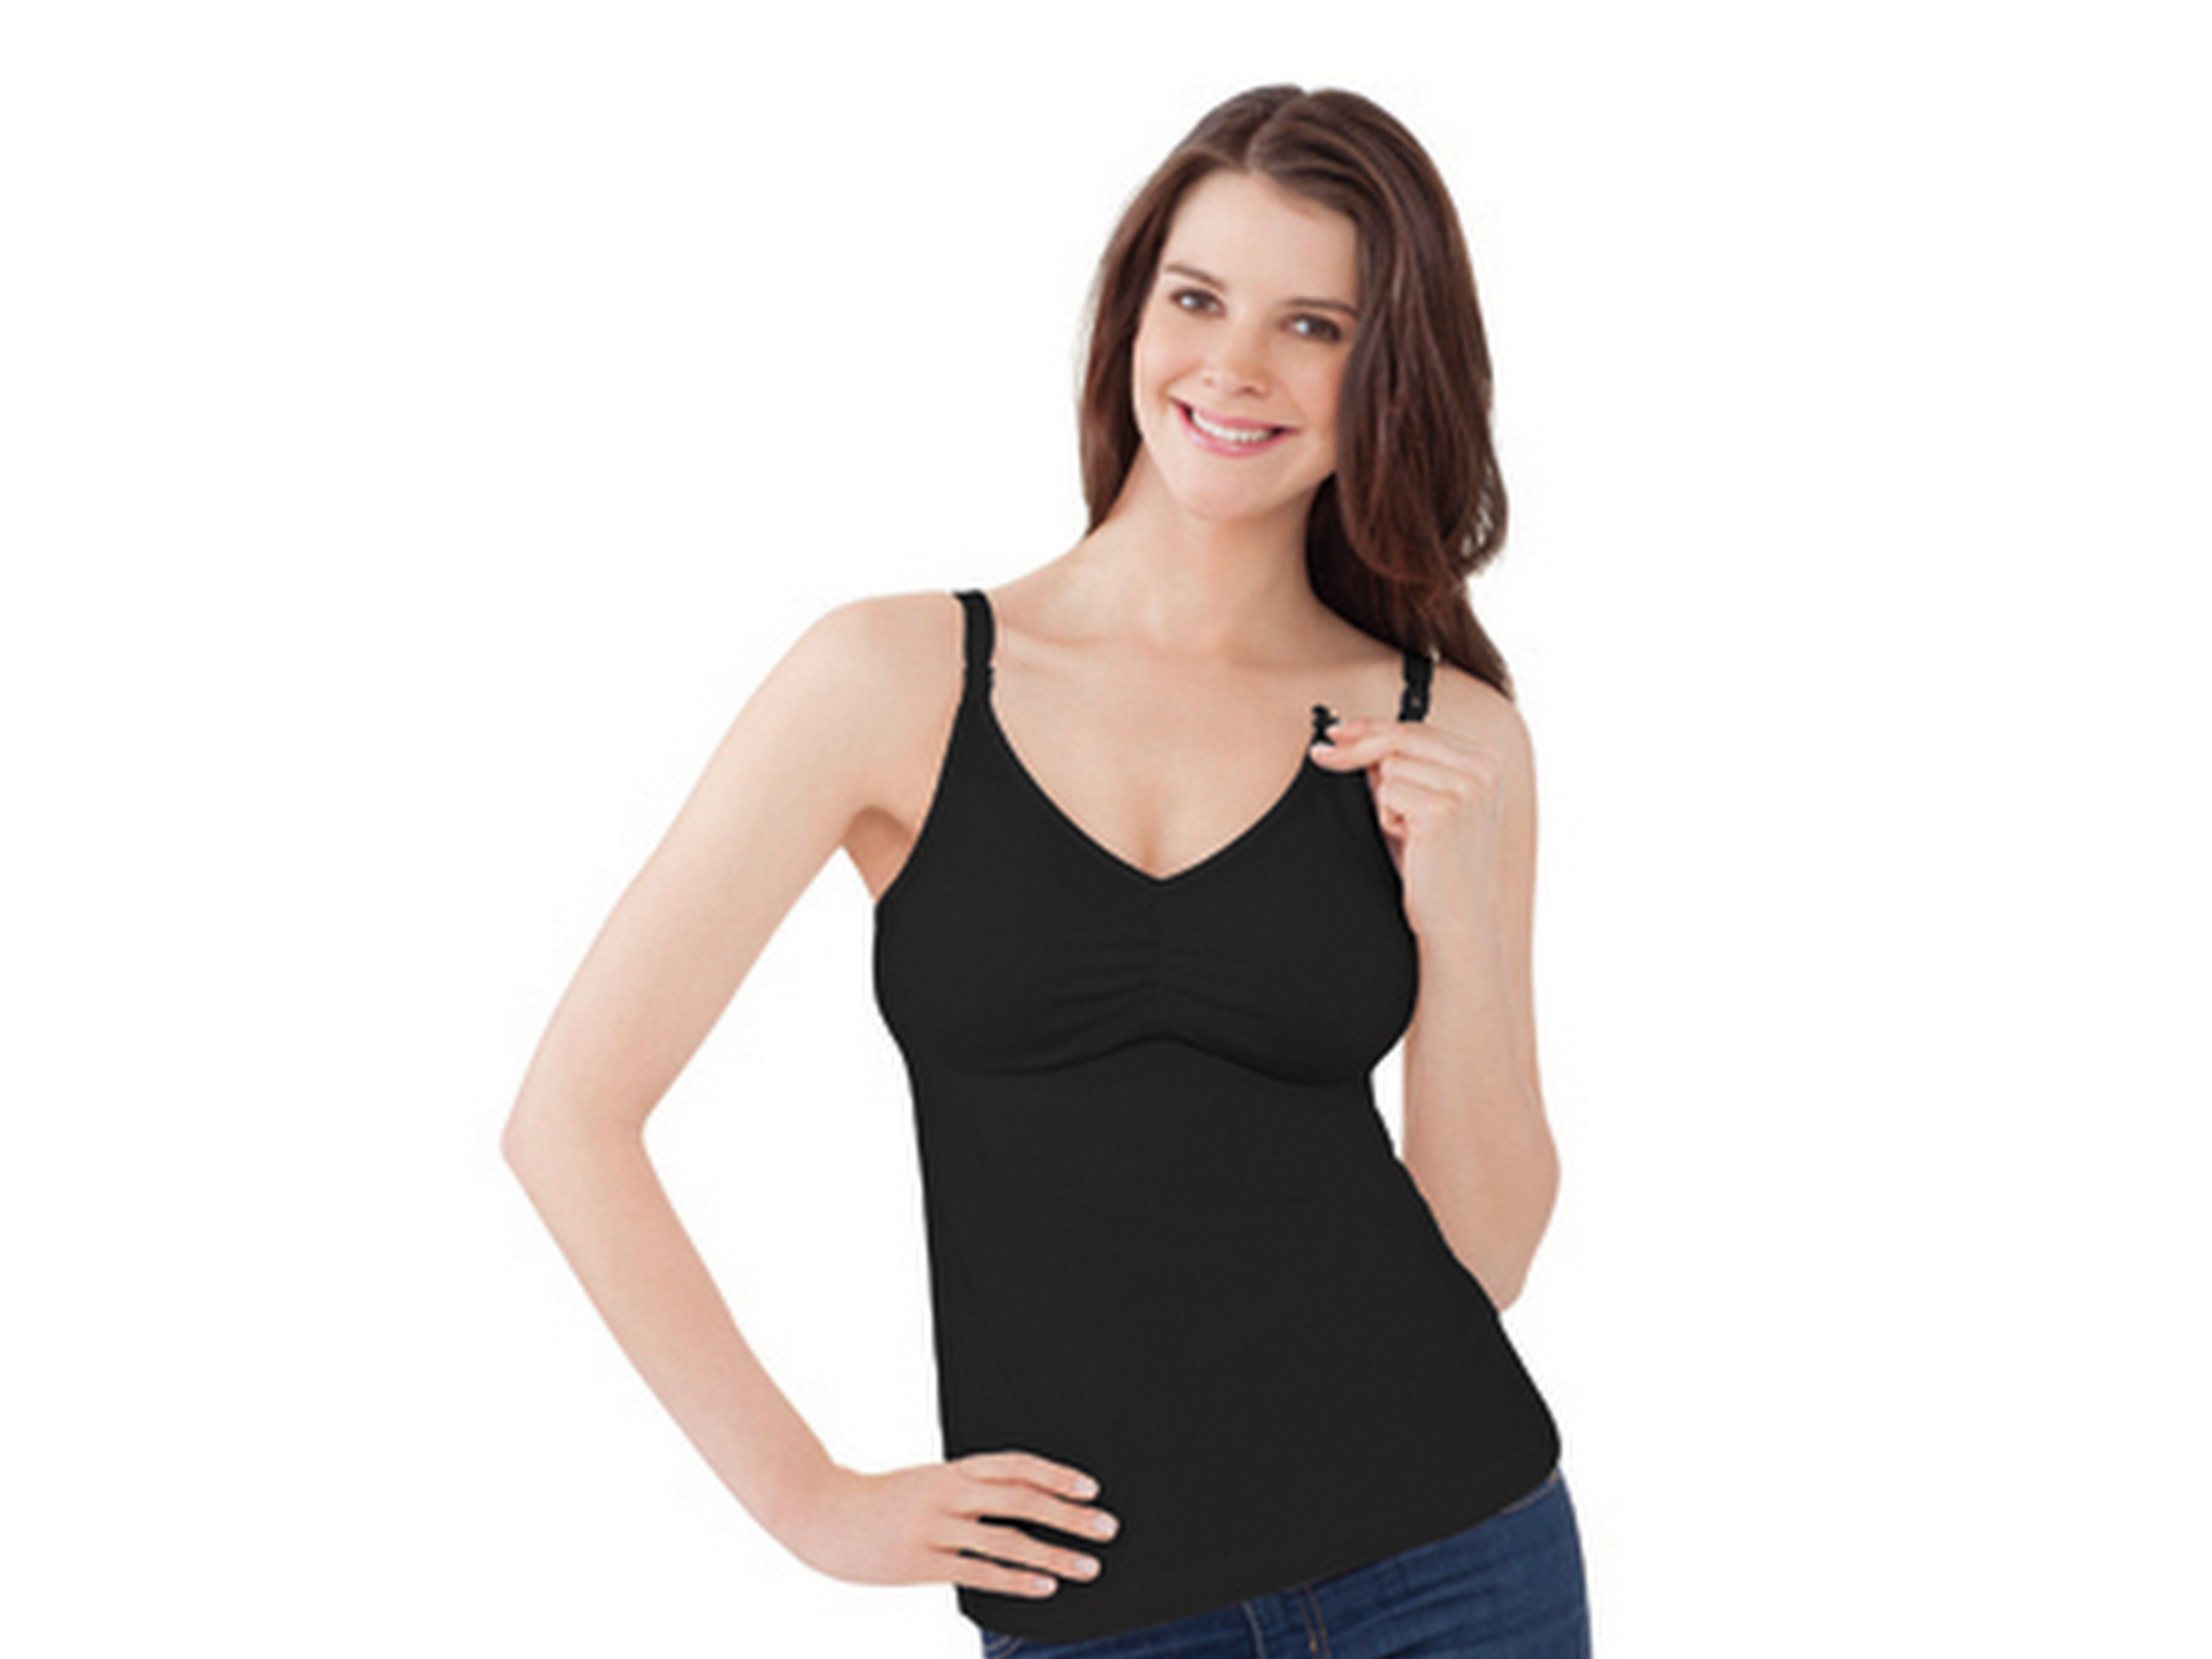 11 Gifts For The Mom Who Just Gave Birth Kristen Nursing Tank